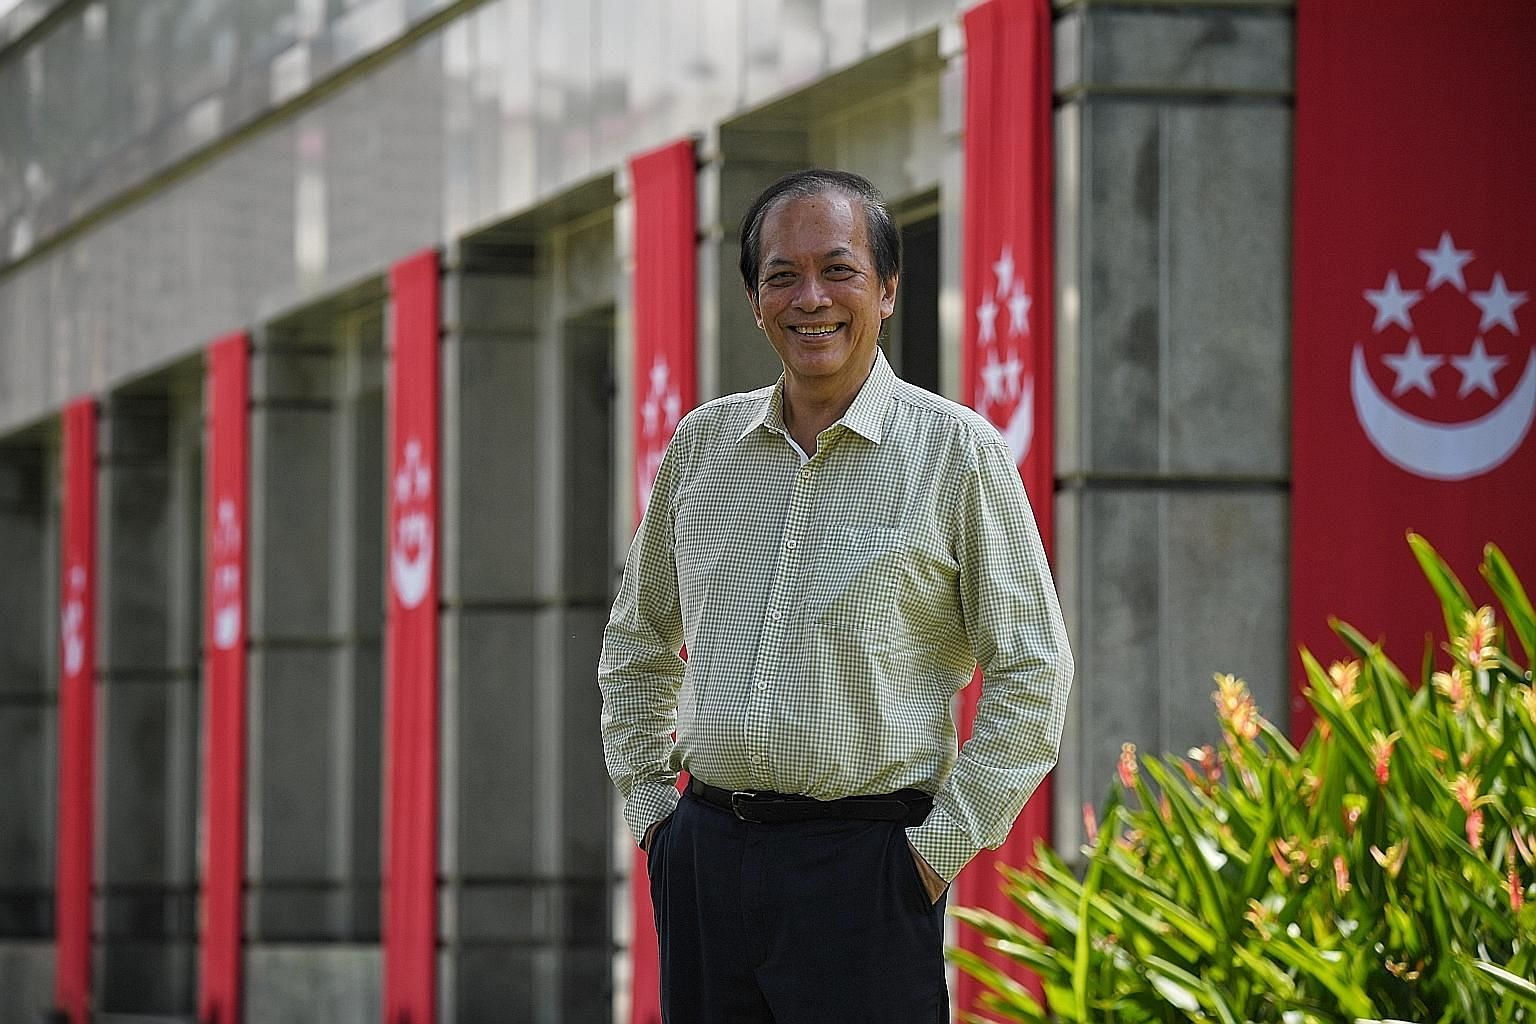 """Mr Charles Chong, who retired this year after 32 years in politics, reckons his string of successes is down to convincing voters to trust that he will do his best for them. He says: """"So as long as they think that you are genuine and you would fight f"""